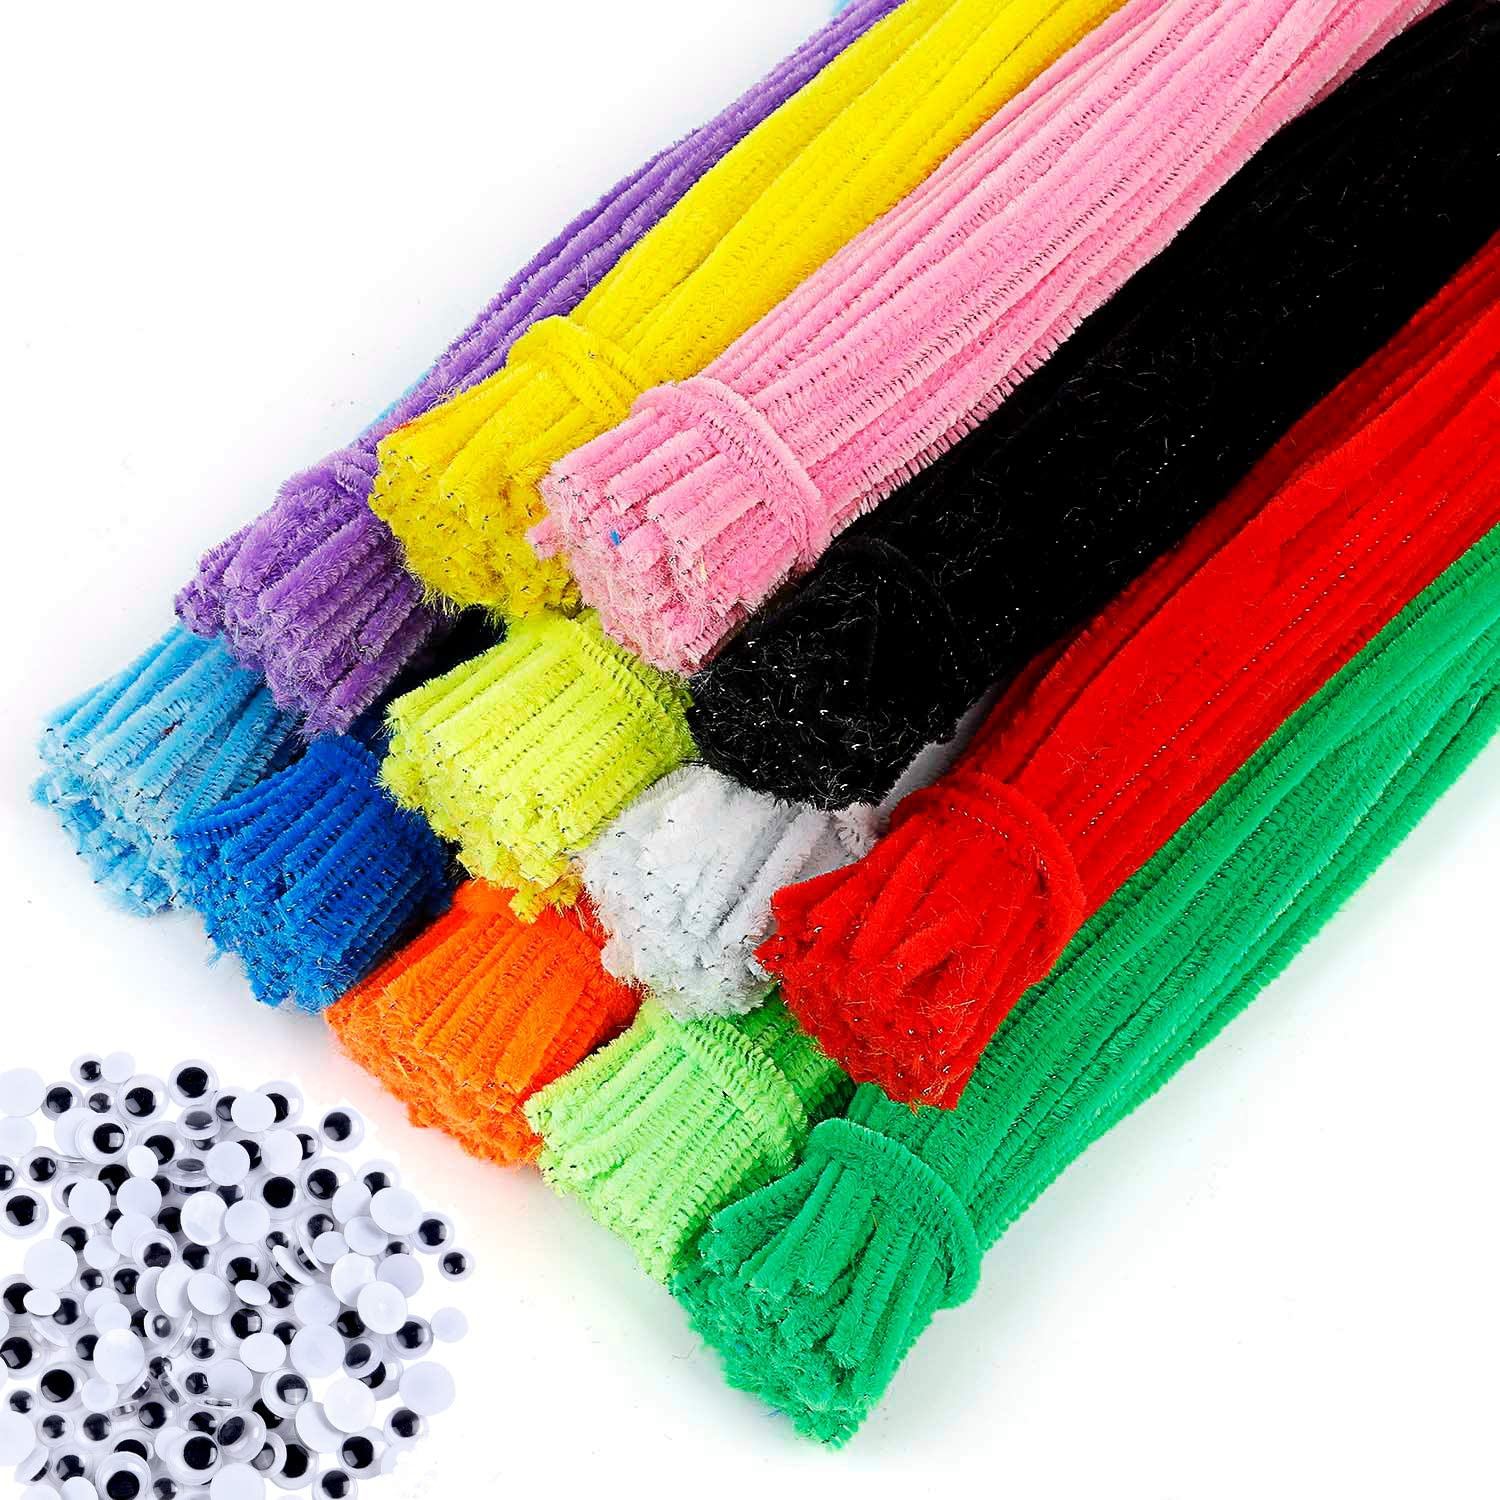 EpiqueOne 1090 Piece Kids Art Craft Supplies Assortment Set for School Projects DIY Activities /& Parties; Pipe Cleaners /& Chenille Craft Sticks Buttons /& Sequins Googly /& Colored Eyes Pom Poms